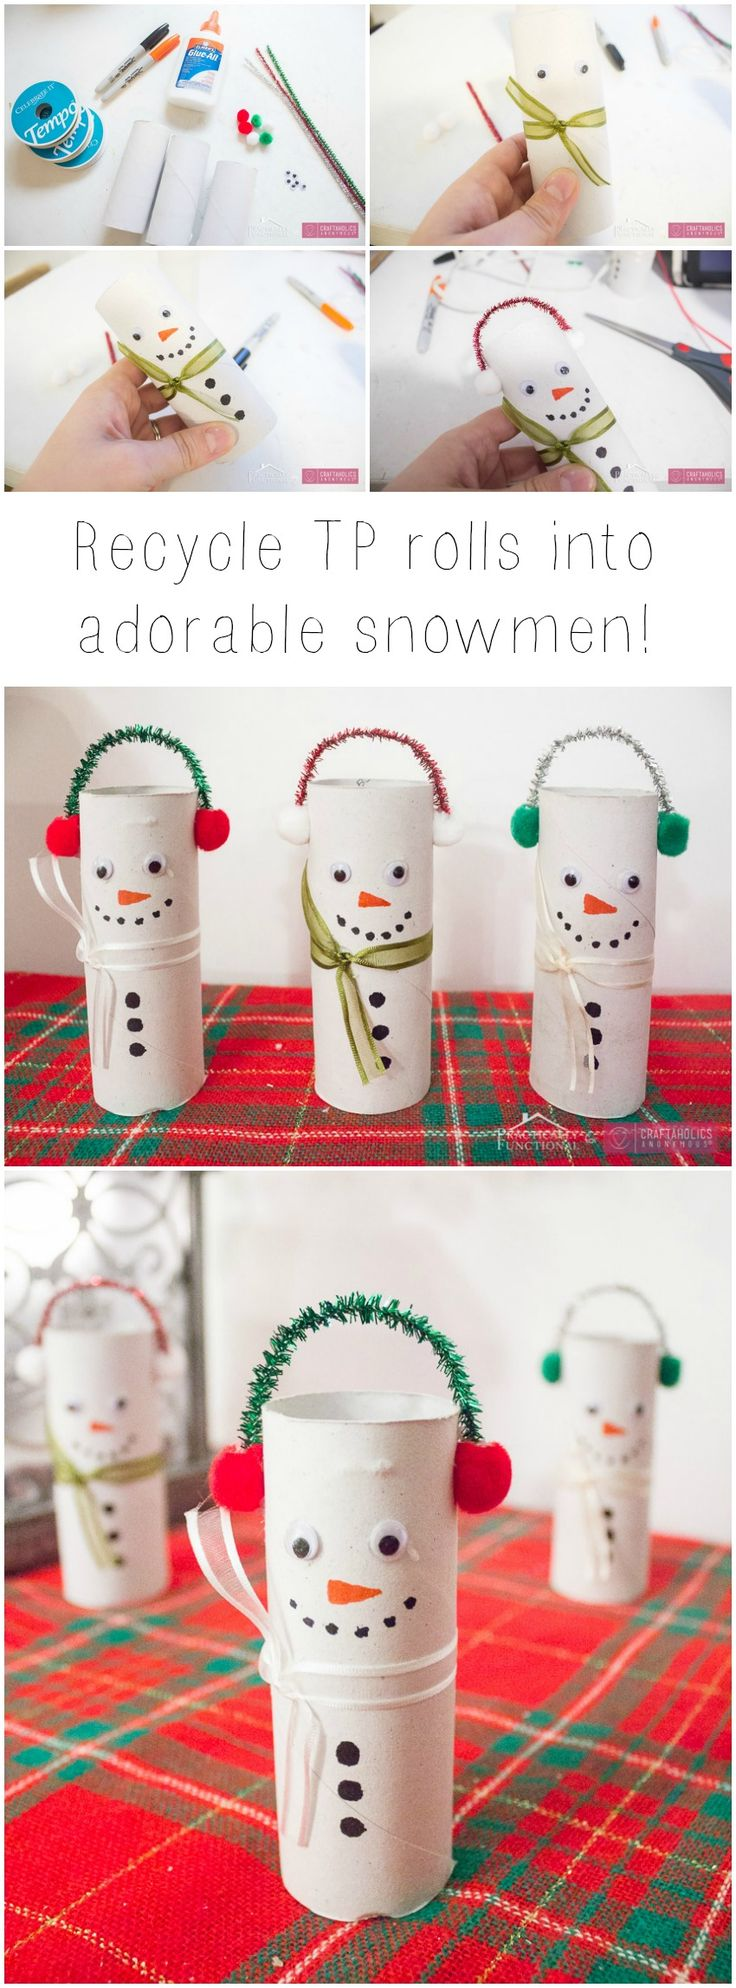 Toilet Paper roll Snowmen craft idea || Make theseToilet Paper roll Snowmen craft idea || Make these with the kids this winter! Make one or a whole family. They'll love personalizing them. with the kids this winter! They'll love personalizing them.